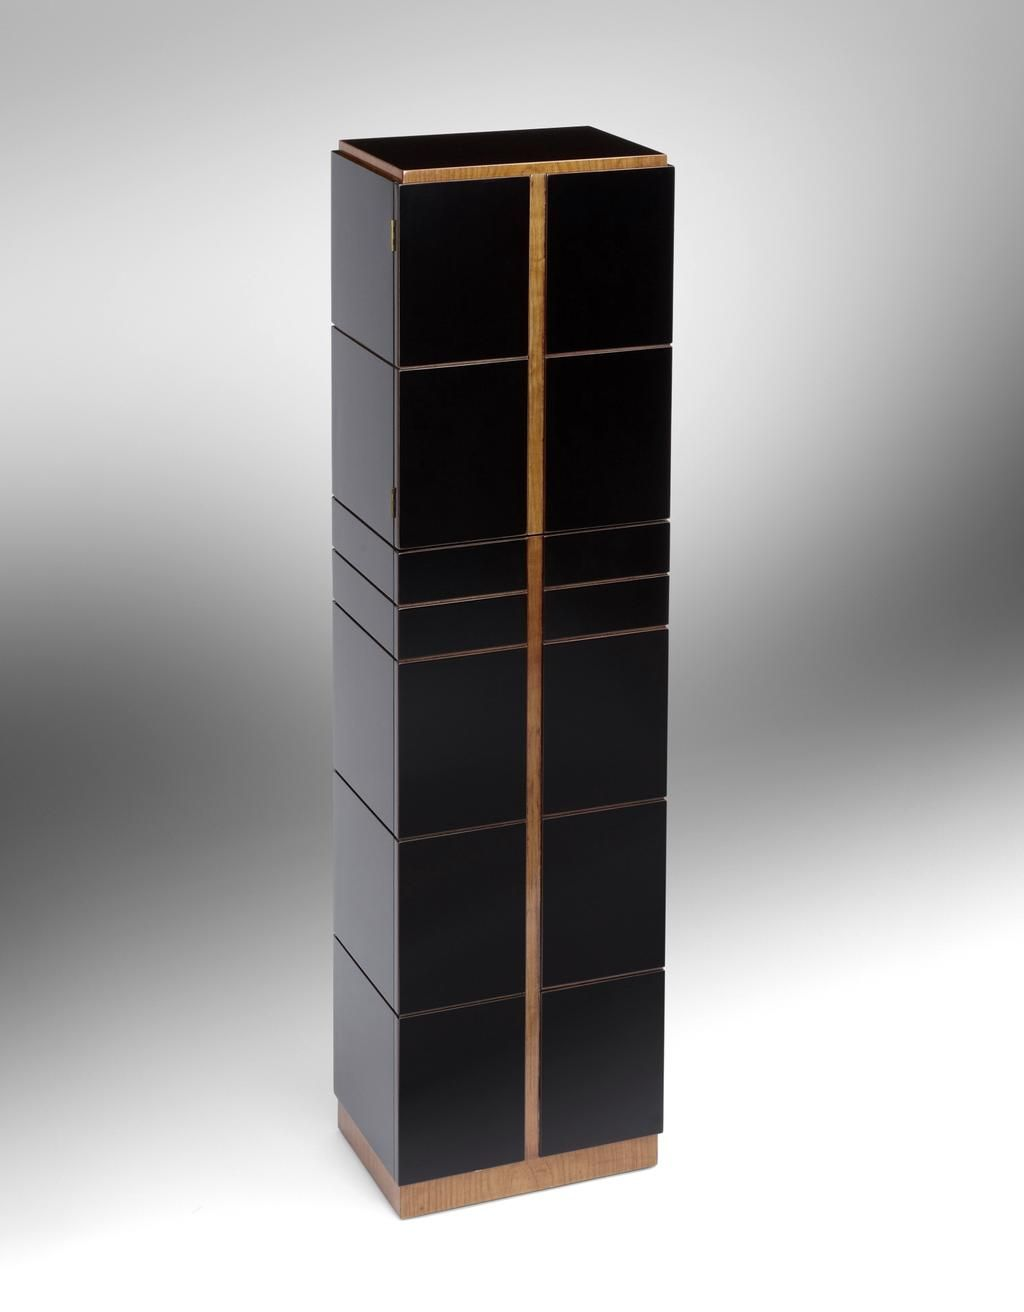 Schrank design  deSaive deSign on | Drinks cabinet, Modern cabinets and Bar